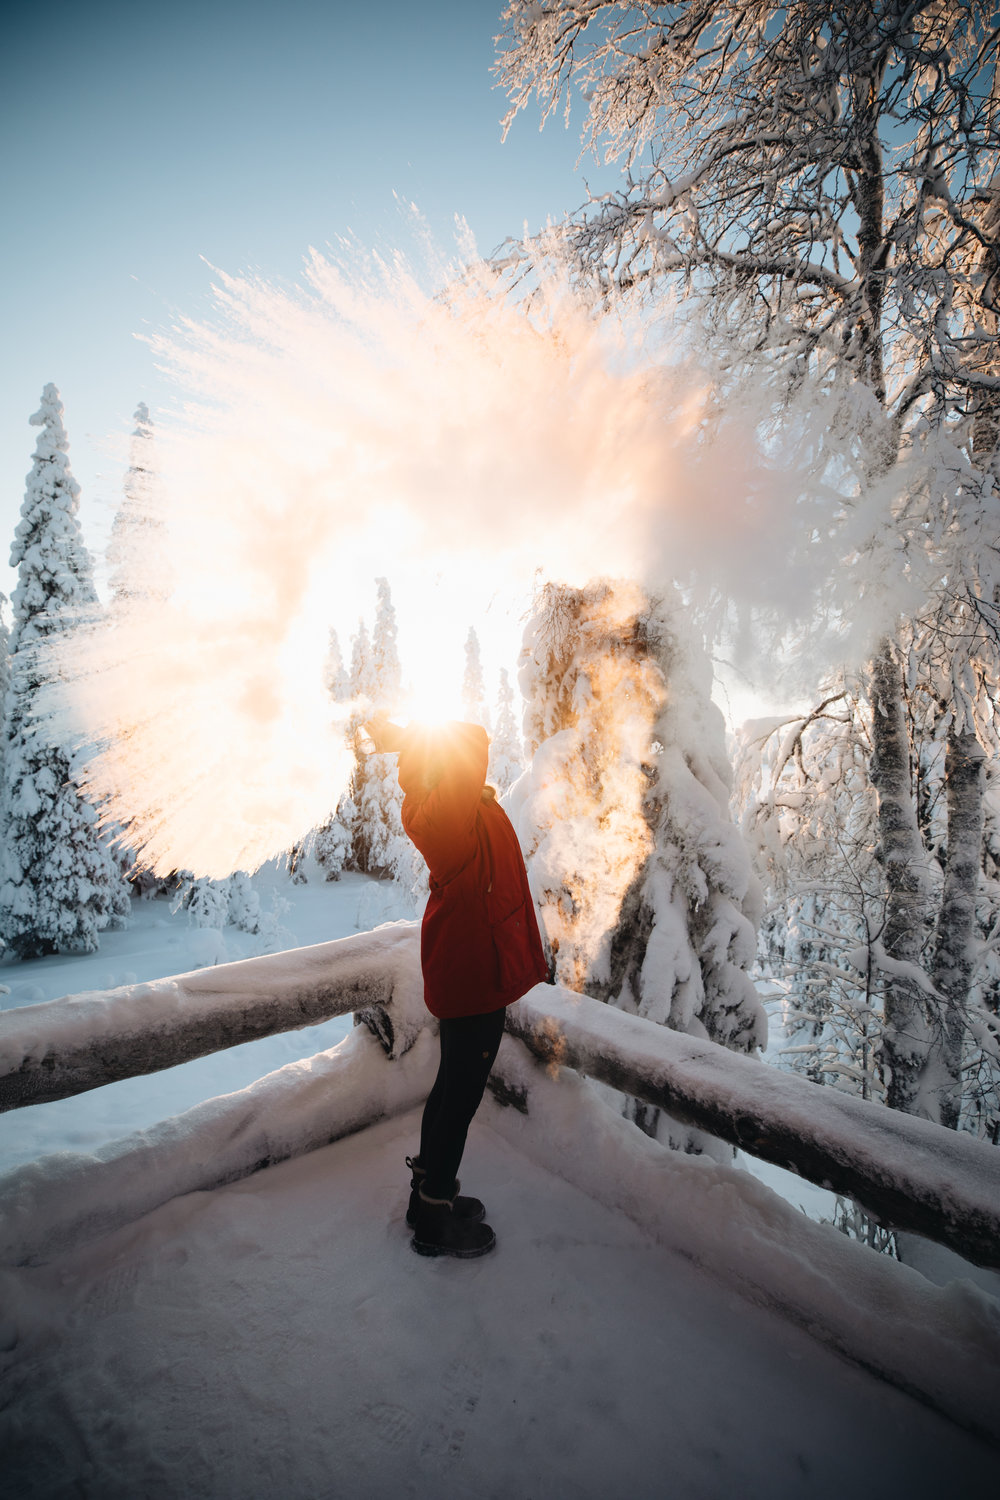 Cold outside? - …we are talking at least -20 degrees Celsius. Then boil up some water, put it in a thermoflask and throw the water into the air. Great fun for sure.